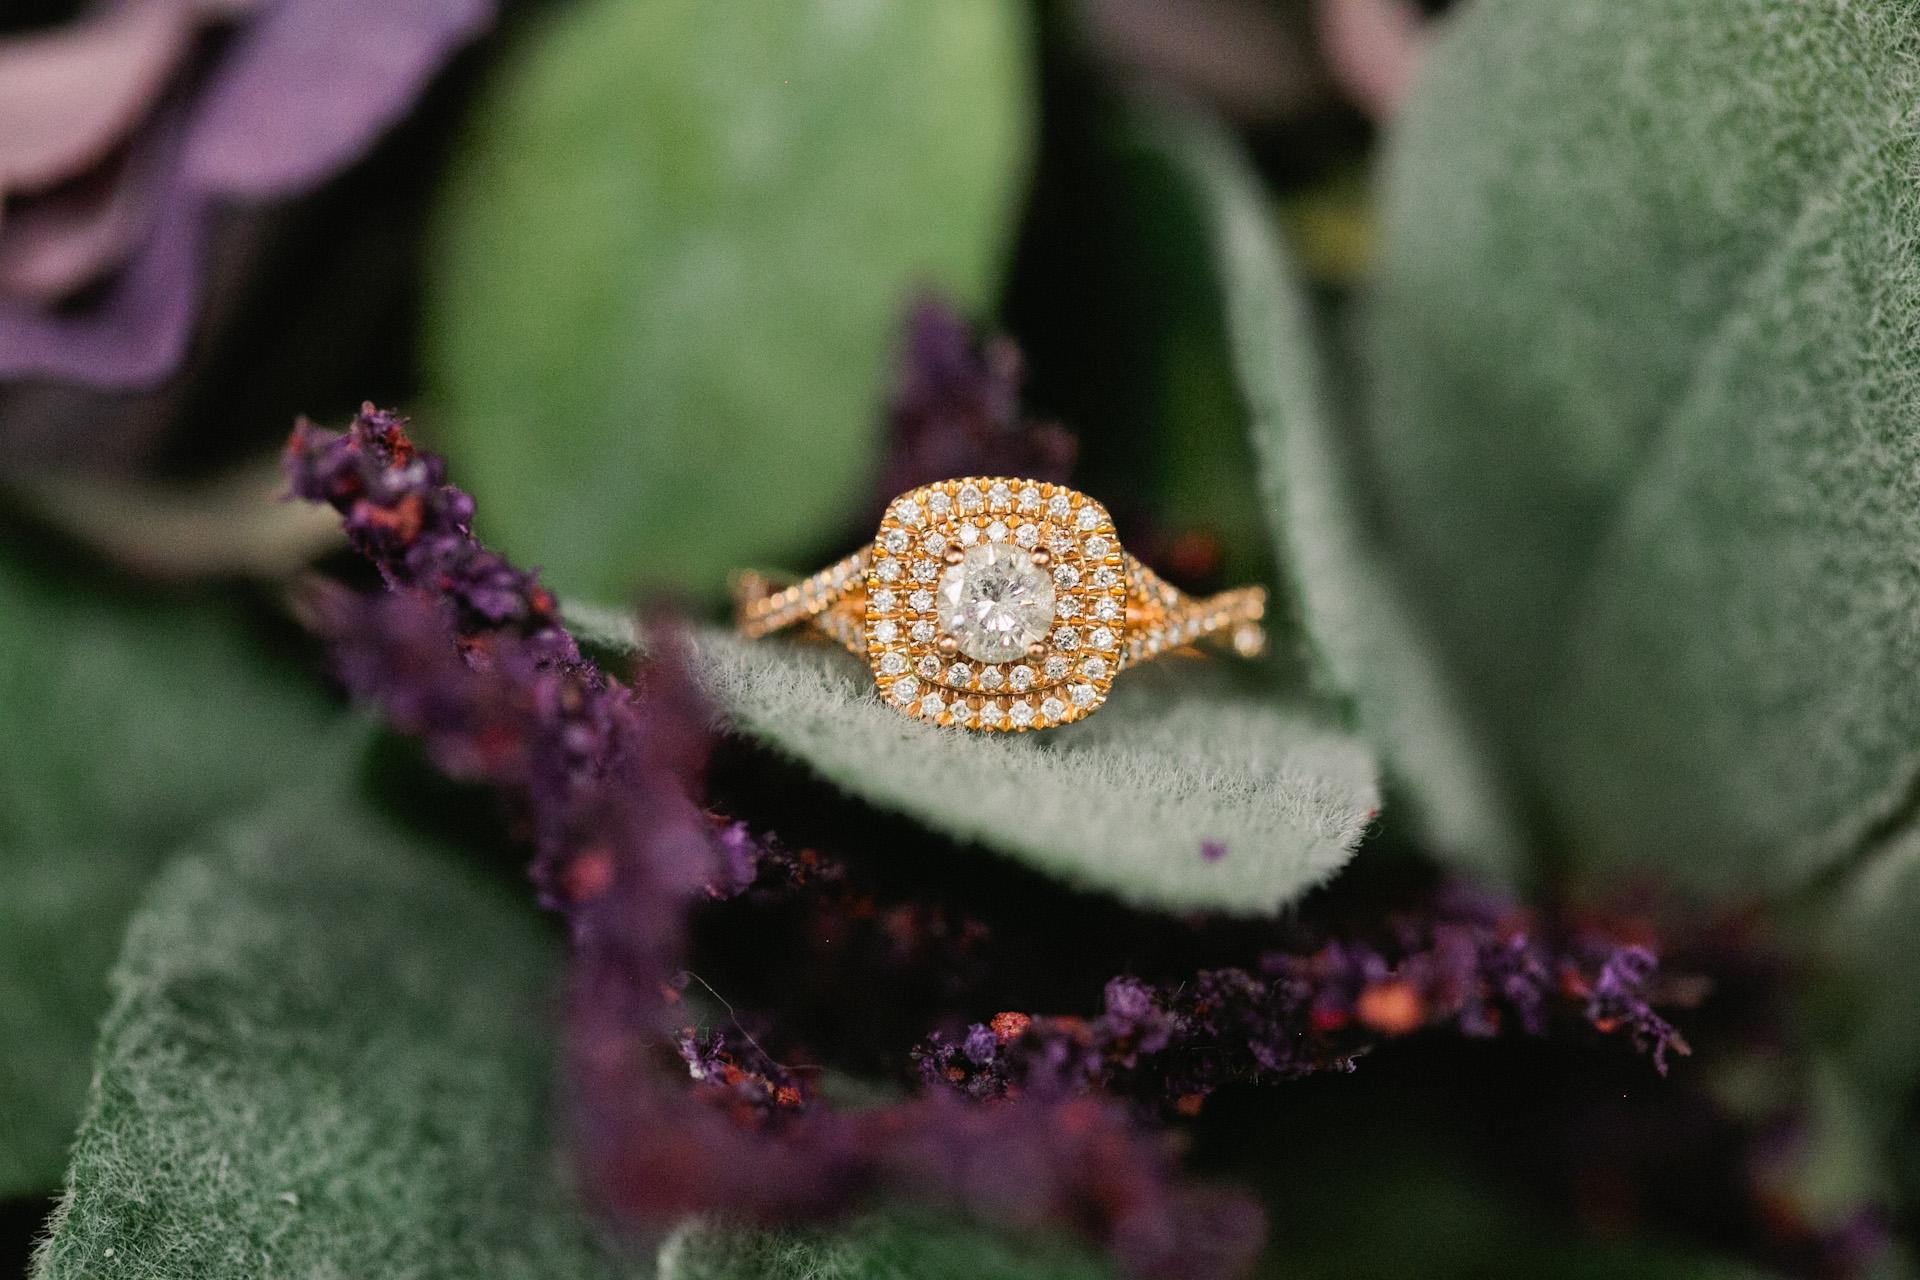 Gorgeous cluster ring gold and diamonds, high end Des Moines wedding photographers